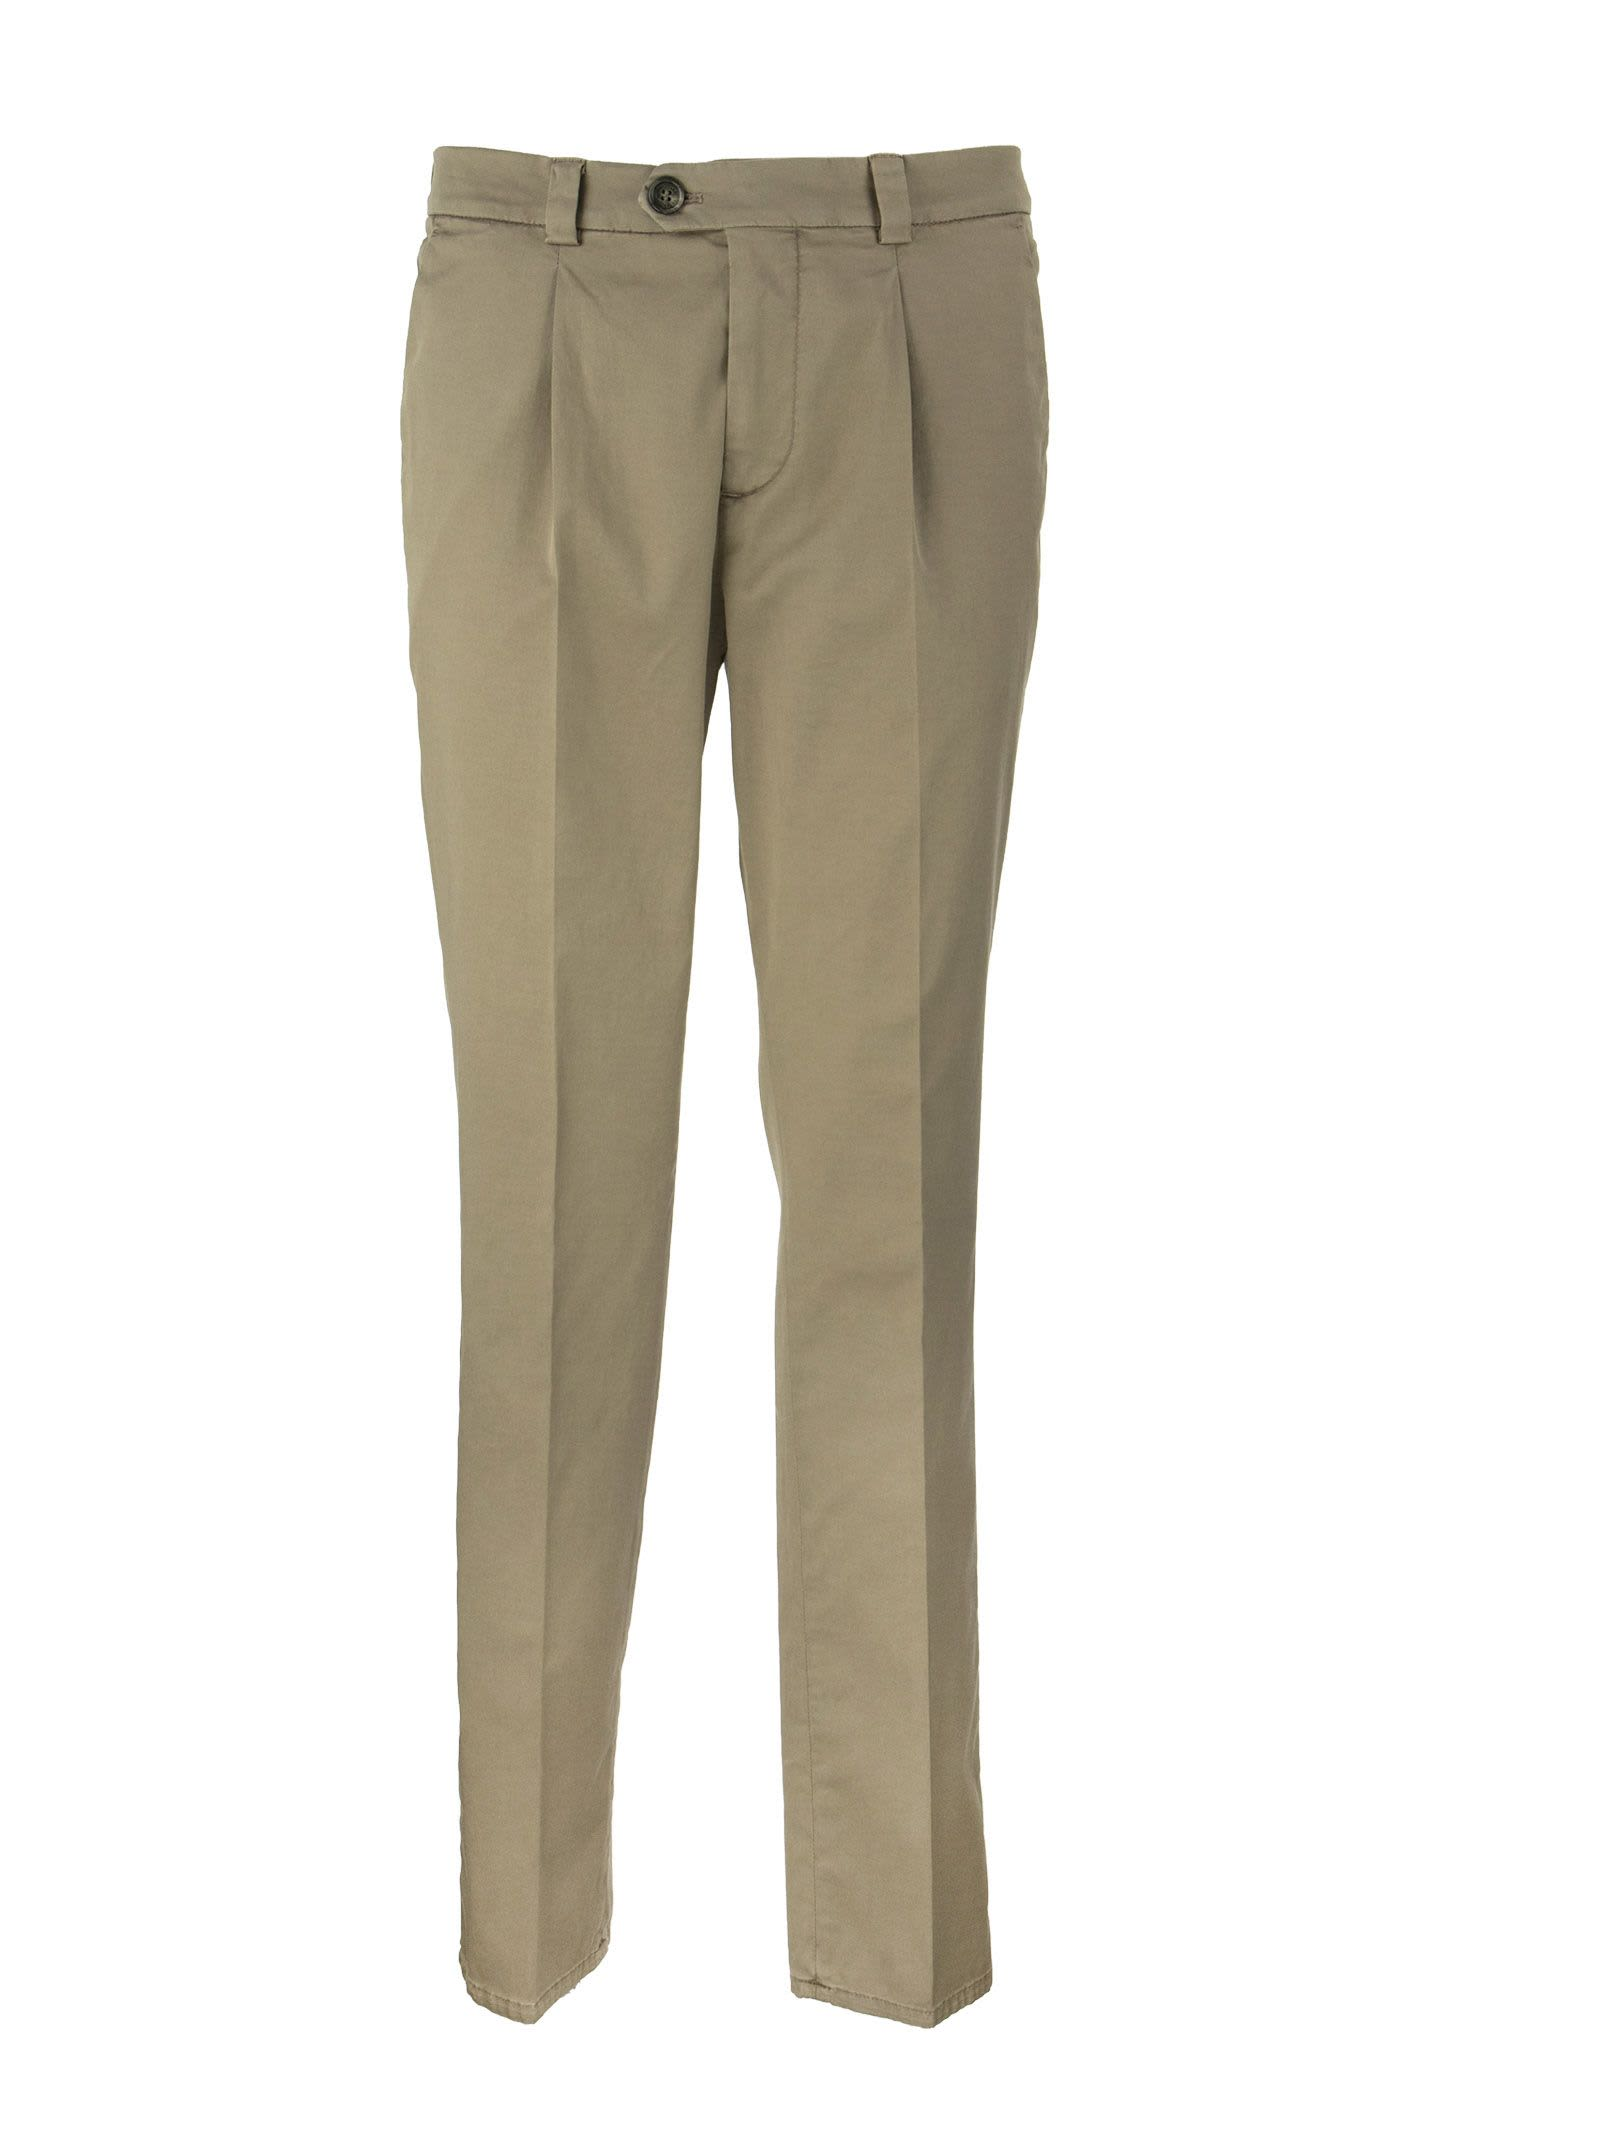 Brunello Cucinelli GARMENT-DYED LEISURE FIT TROUSERS IN AMERICAN PIMA COMFORT COTTON WITH PLEATS